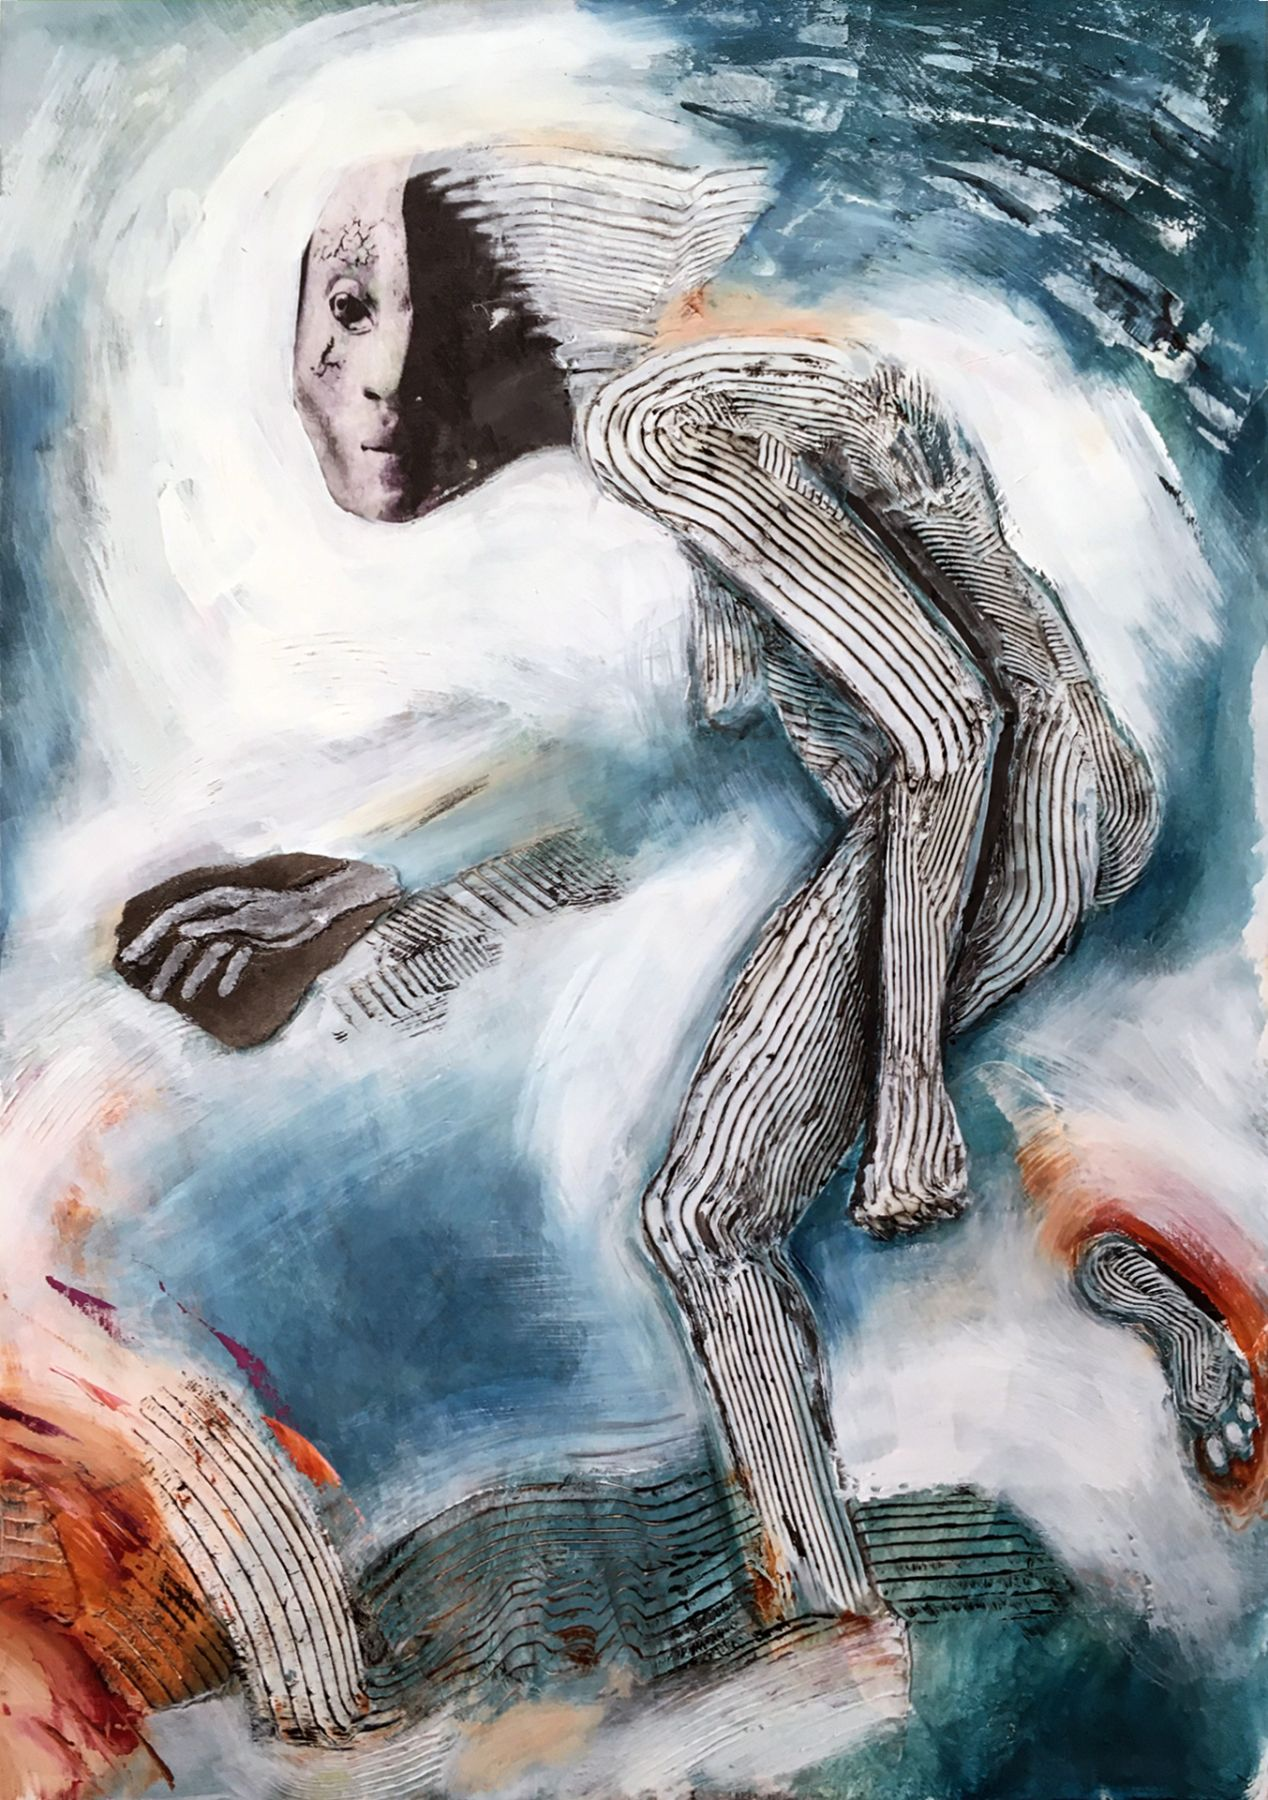 Emergence, 2020 Oil and stone on board